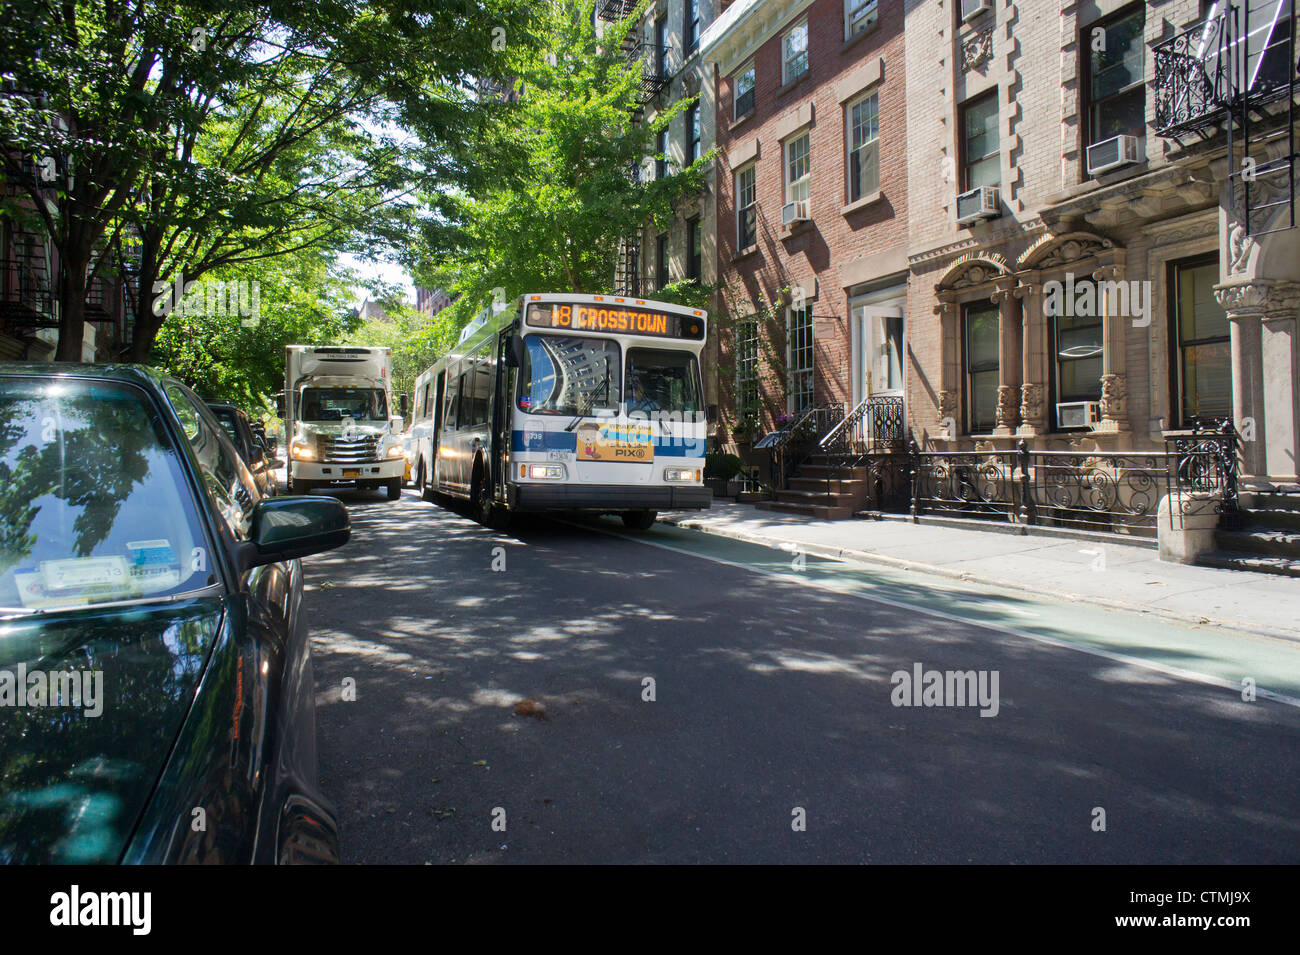 A NYC Transit bus maneuvers through the narrow streets of the Greenwich Village neighborhood of New York - Stock Image